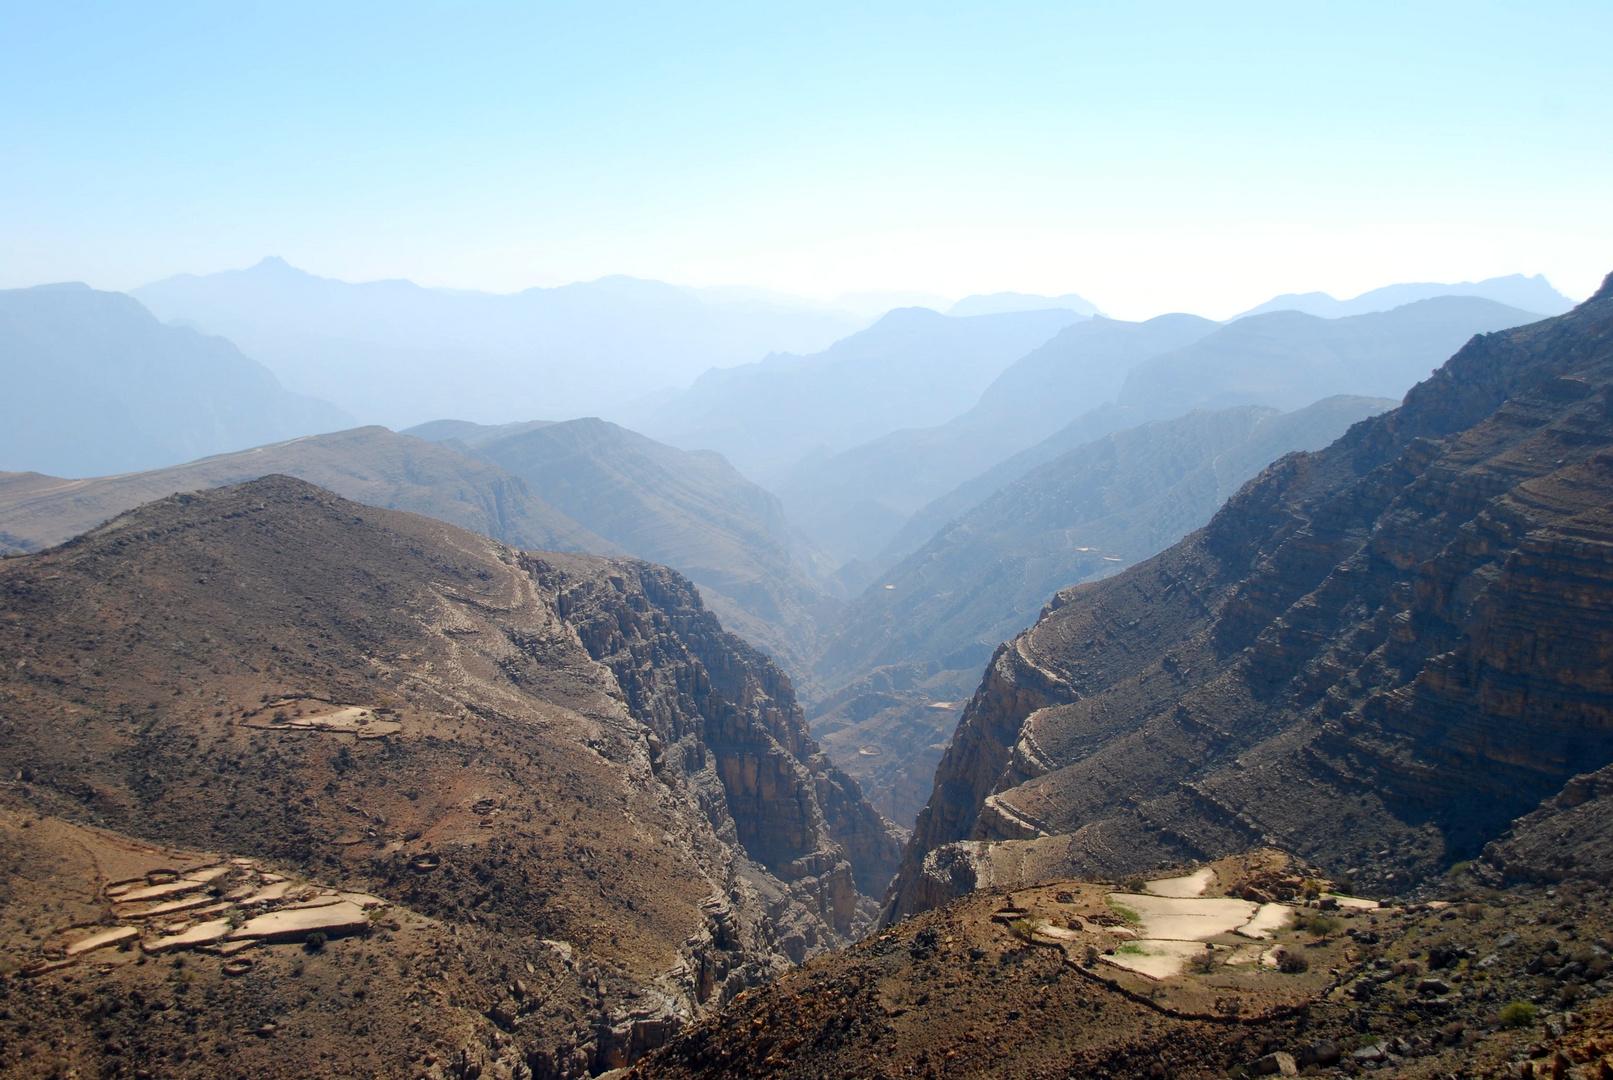 Canyon in Mussandam/Oman